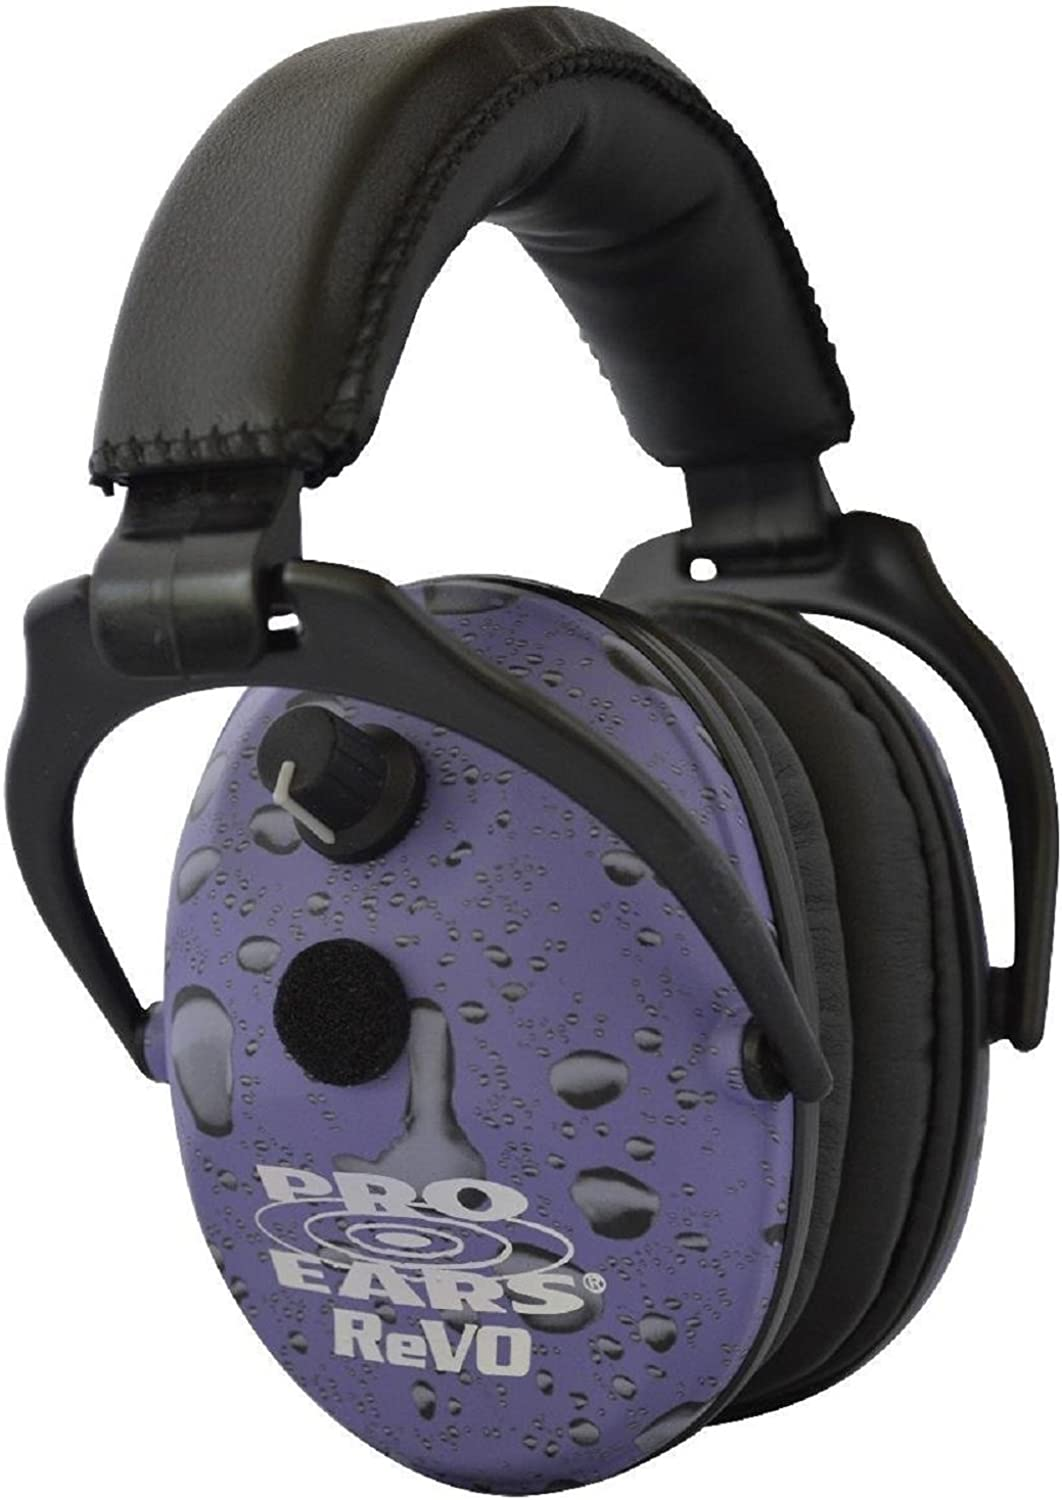 Pro Ears - ReVO Electronic Hearing Protection Weekly update and 4 years warranty Amplificatio